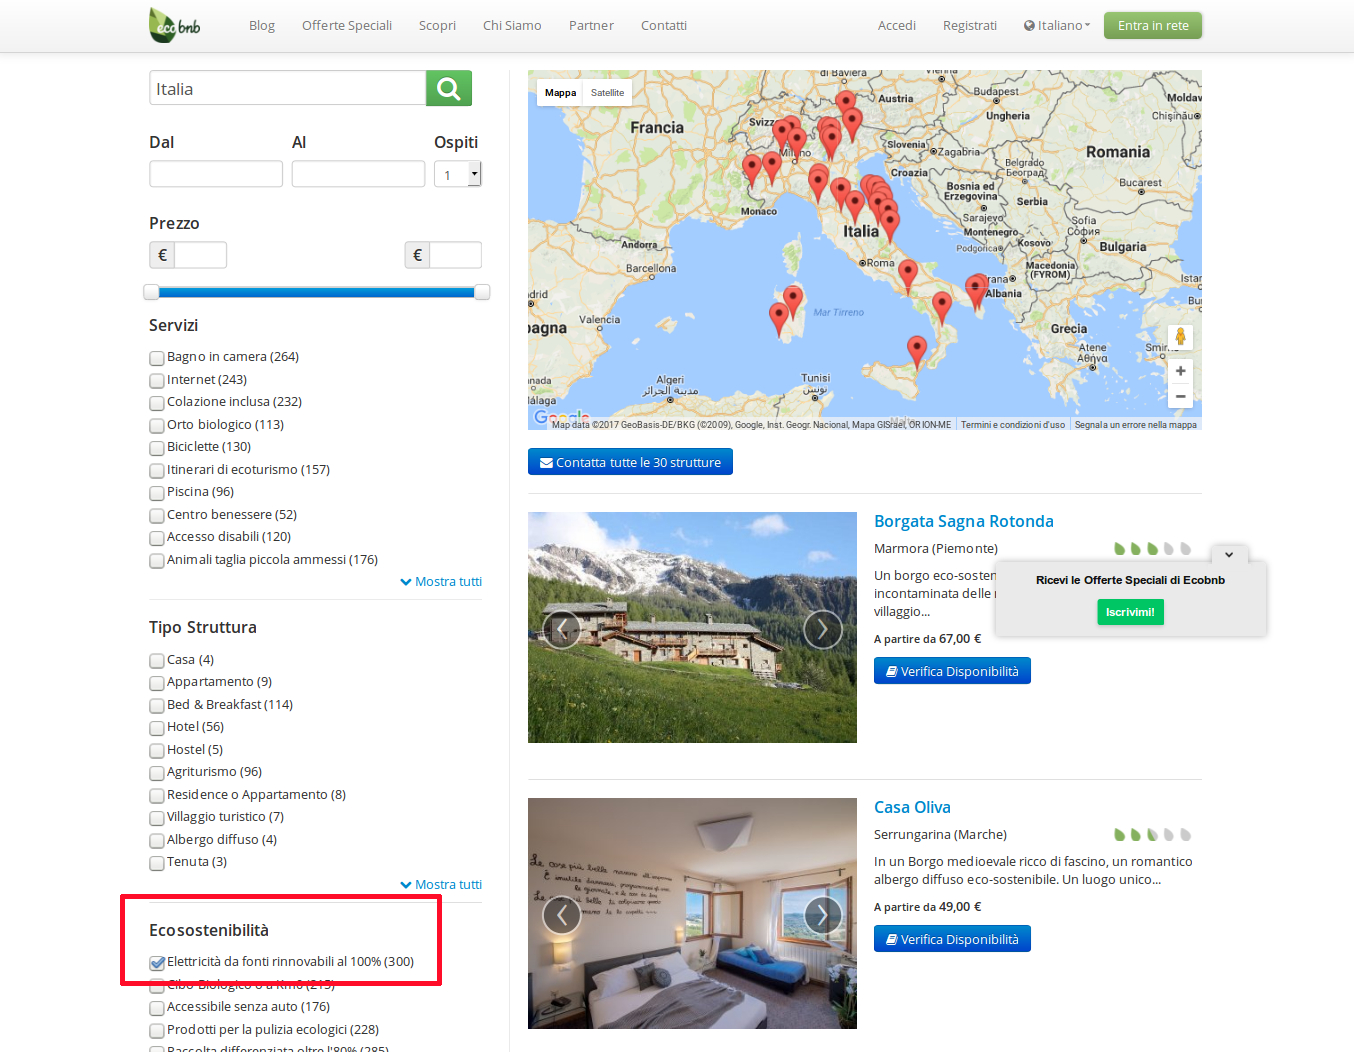 Map of Hotel and B & B with clean energy in Italy, doing a search for Eco-Sustainability criteria with Ecobnb platform.